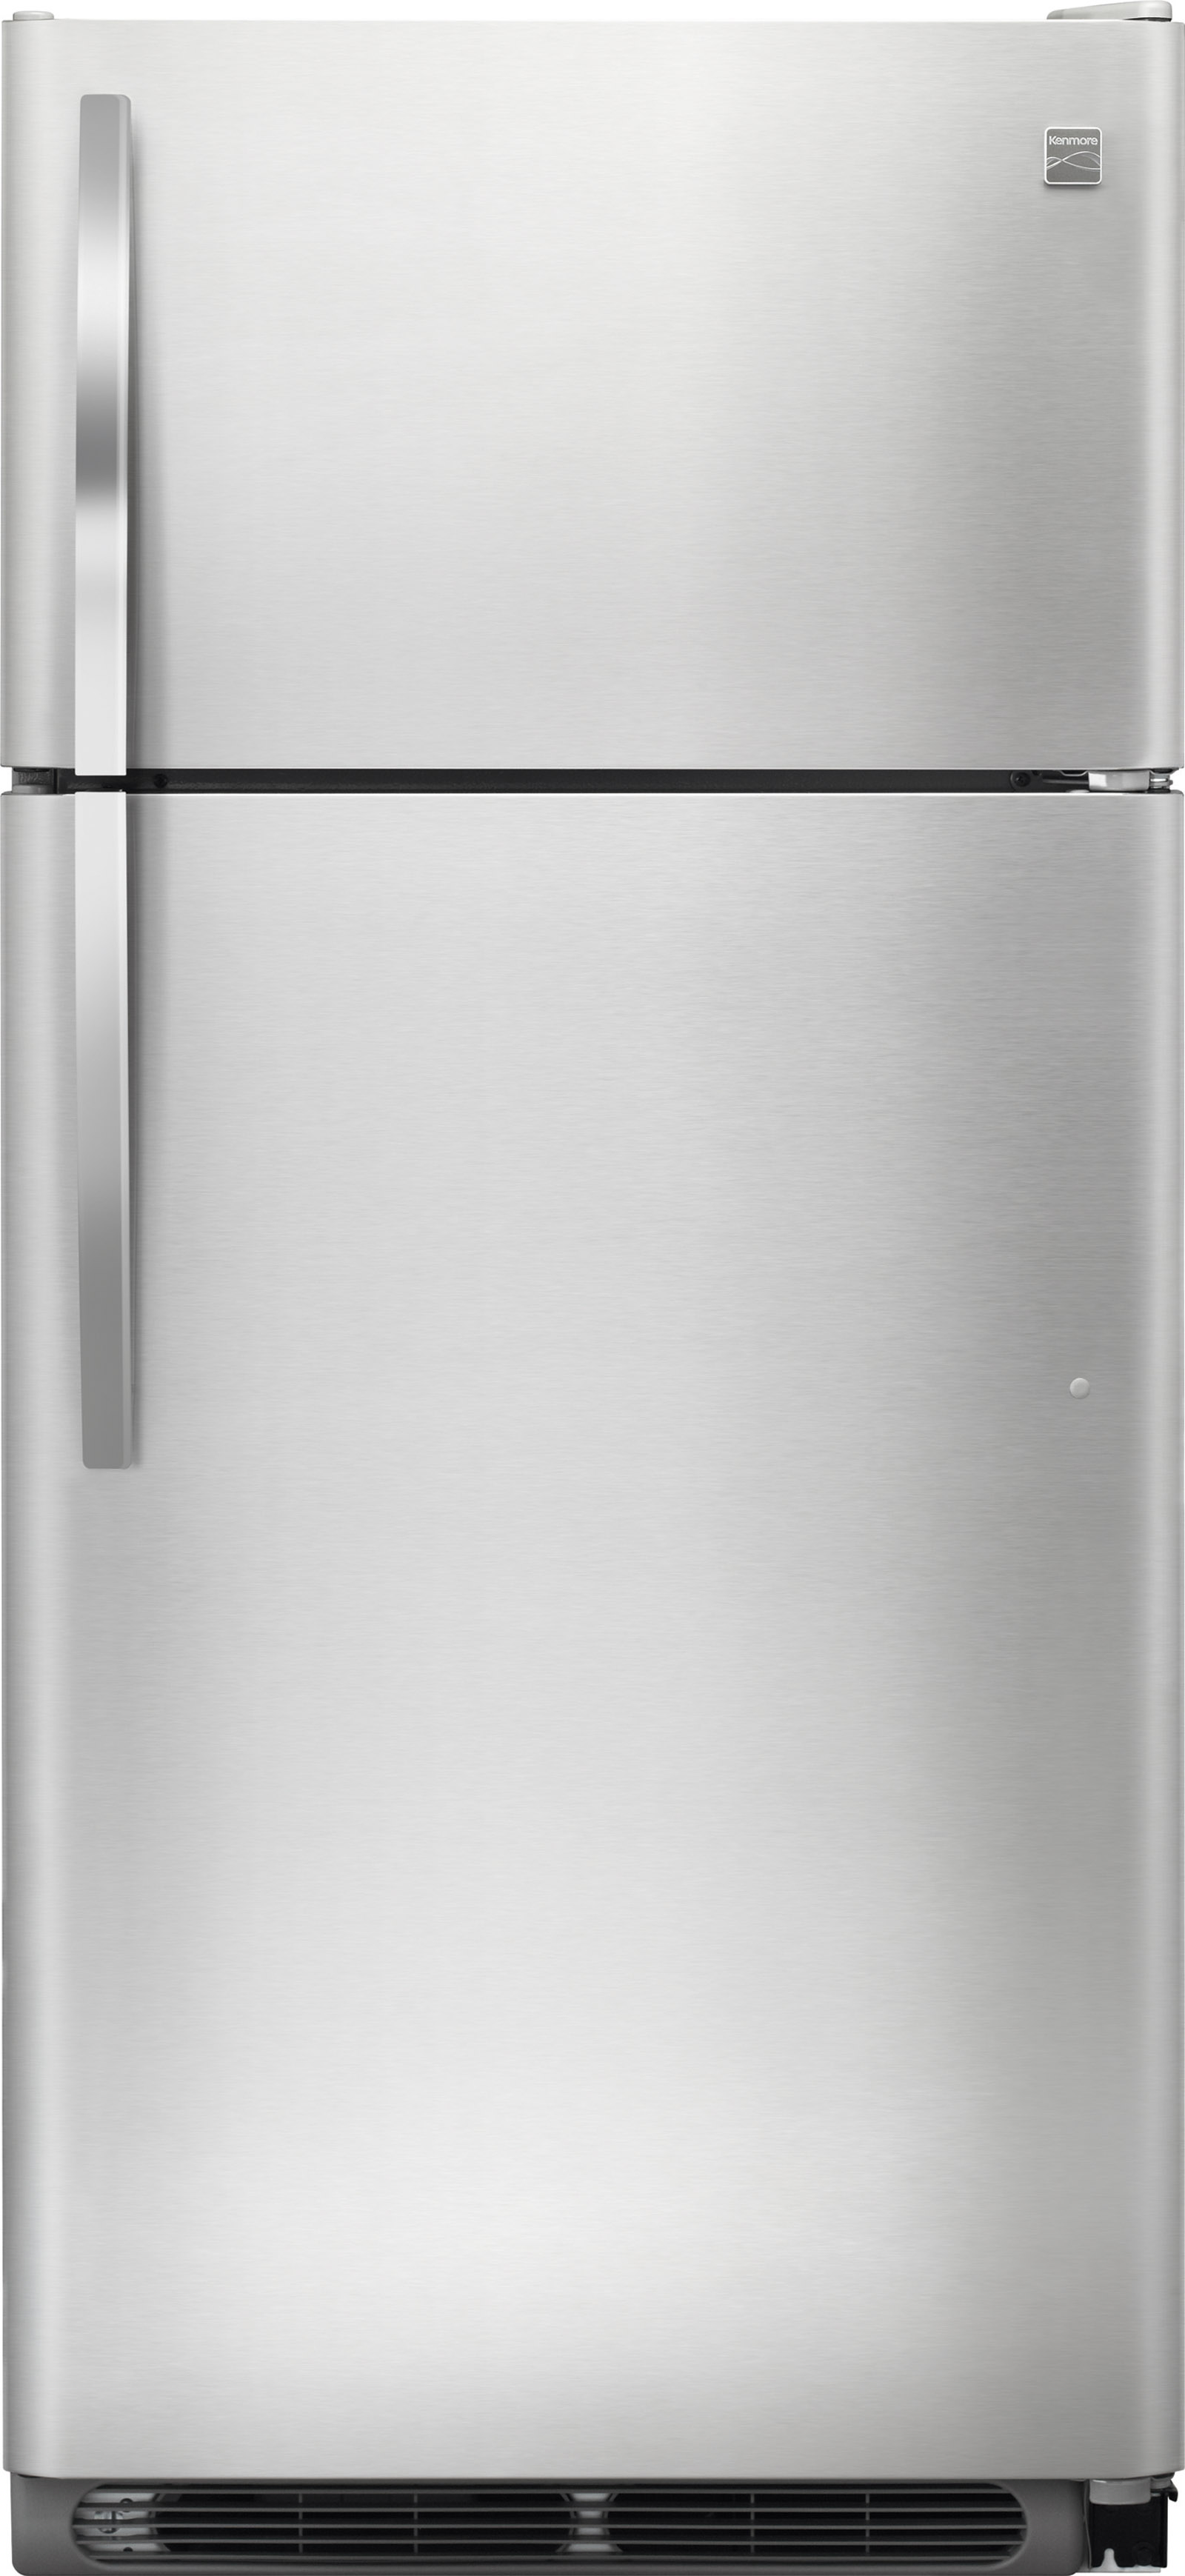 60505-18-cu-ft-Top-Freezer-Refrigerator-w-Glass-Shelves-Stainless-Steel